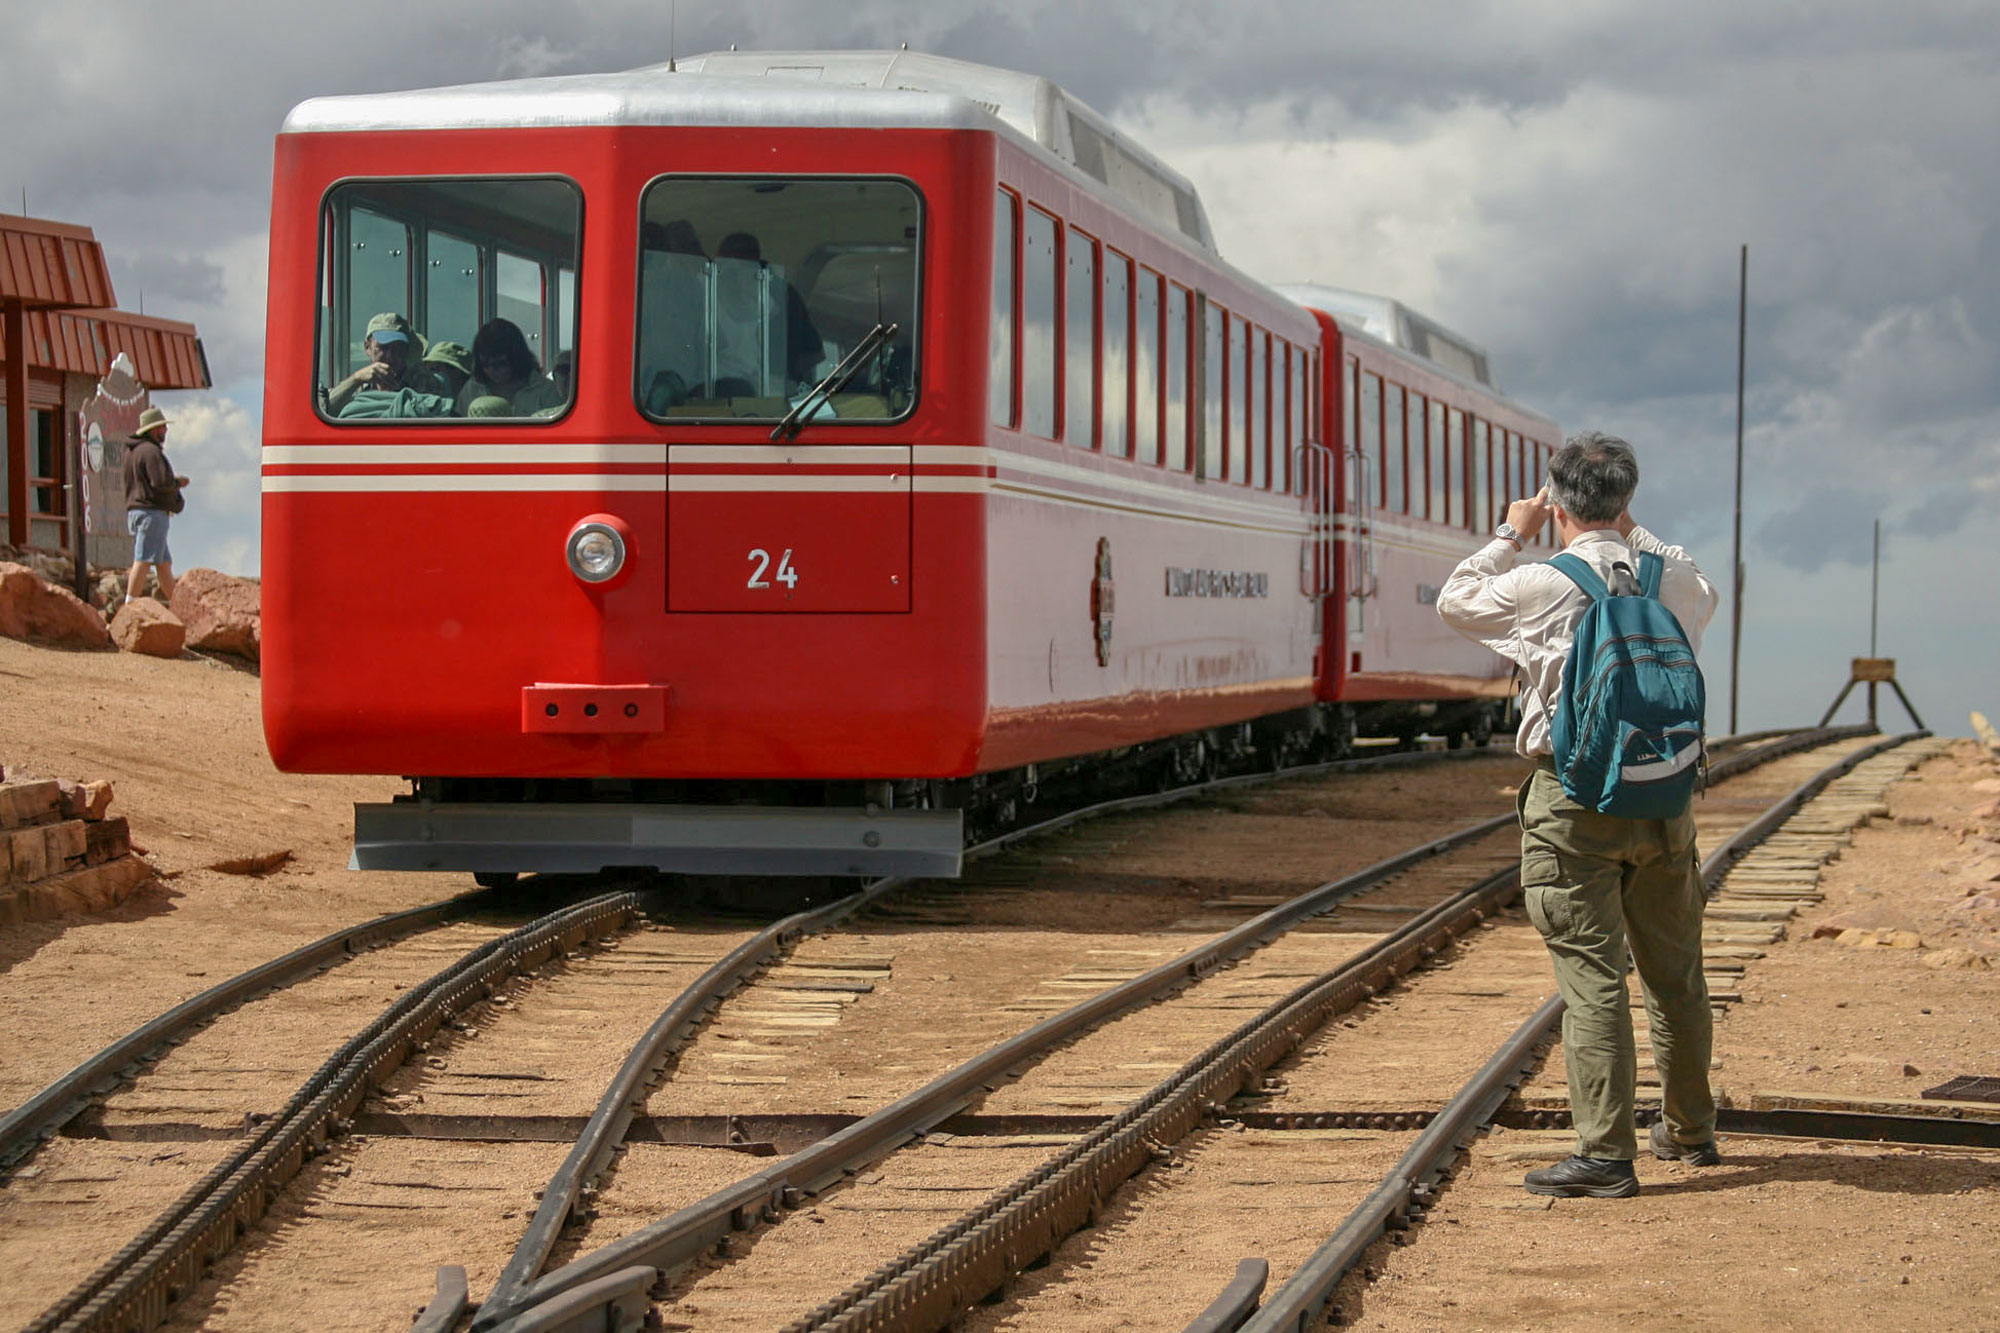 <p>A traveller takes a photograph of the Manitou and Pike's Peak Cog Railway train at the summit of Pike's Peak, May 2006.</p>